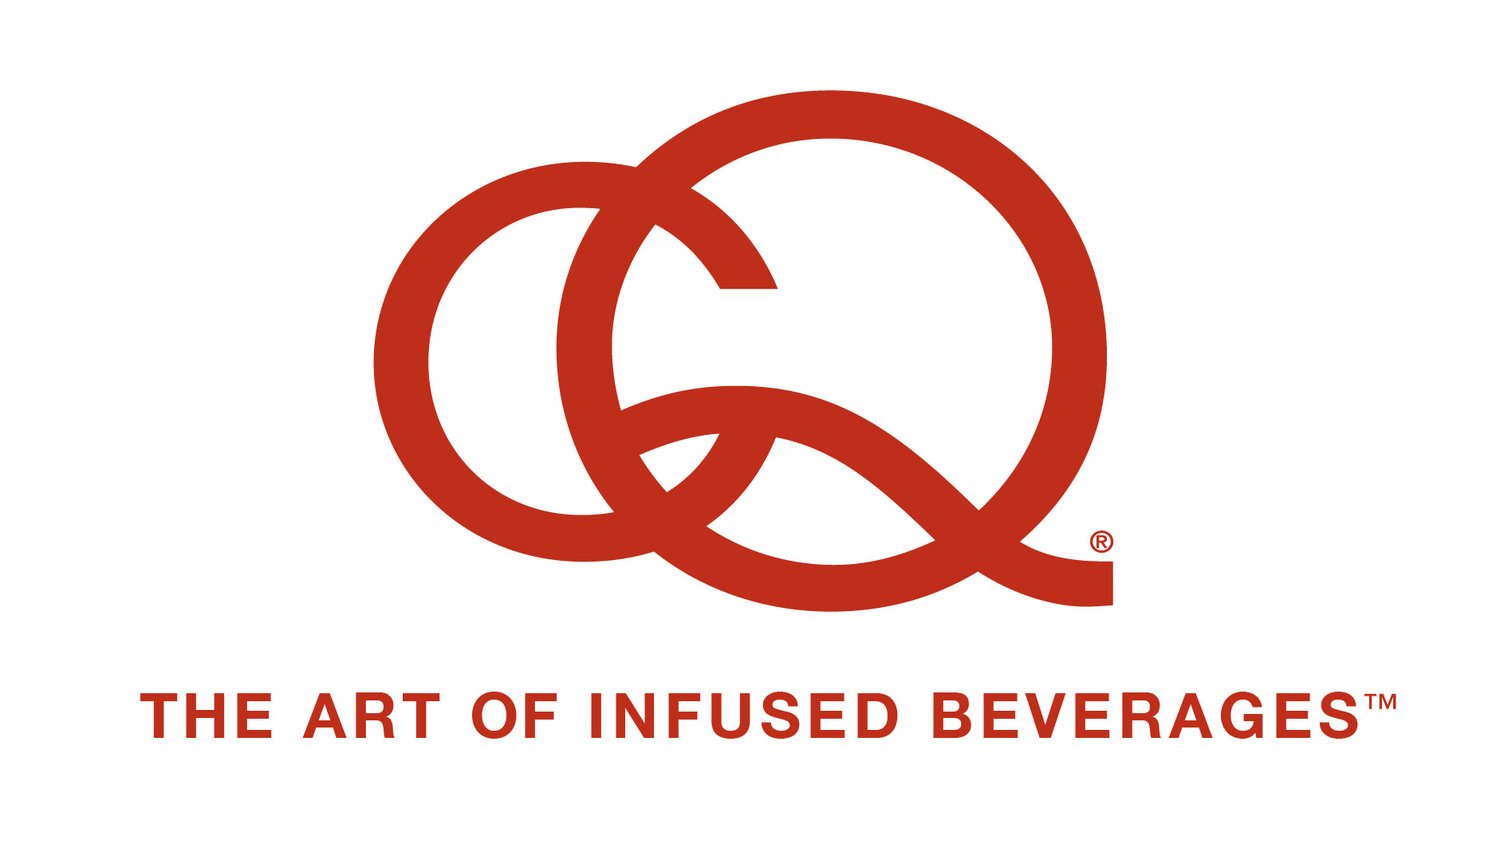 The Art of Infused Beverages